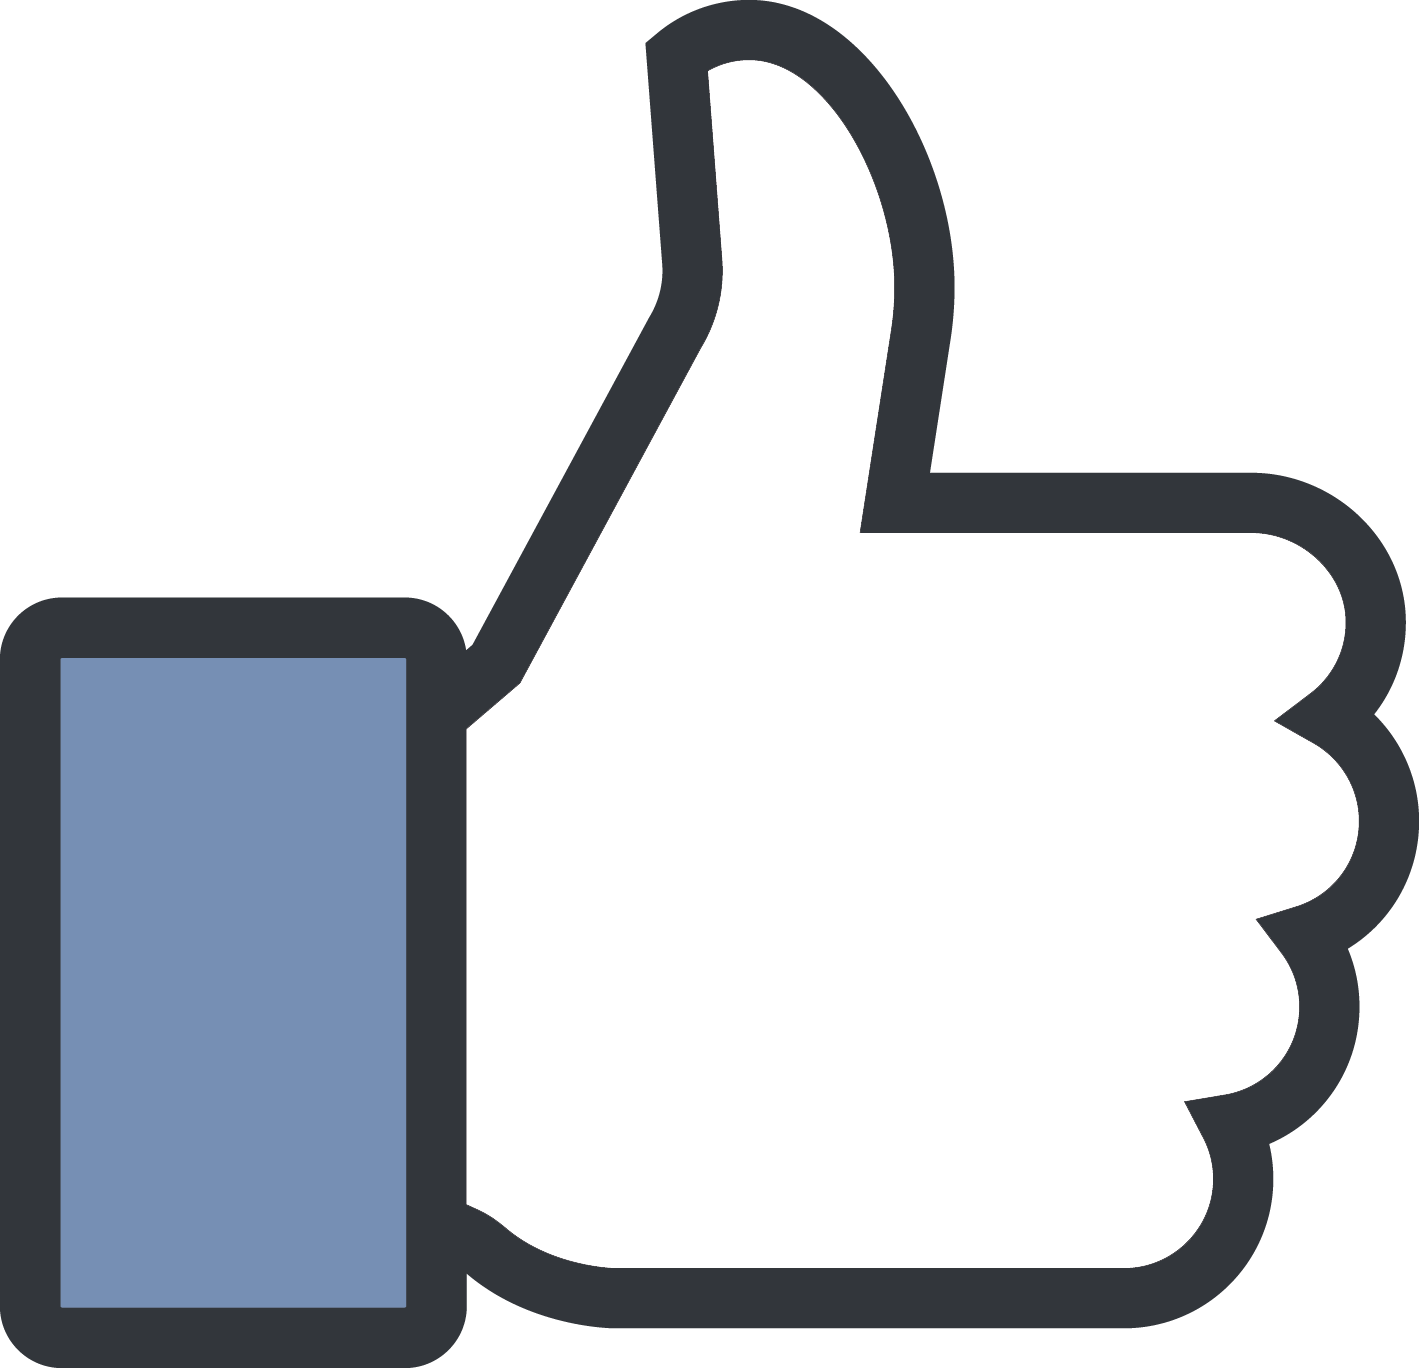 Youtube thumbs up png. Free like icon download